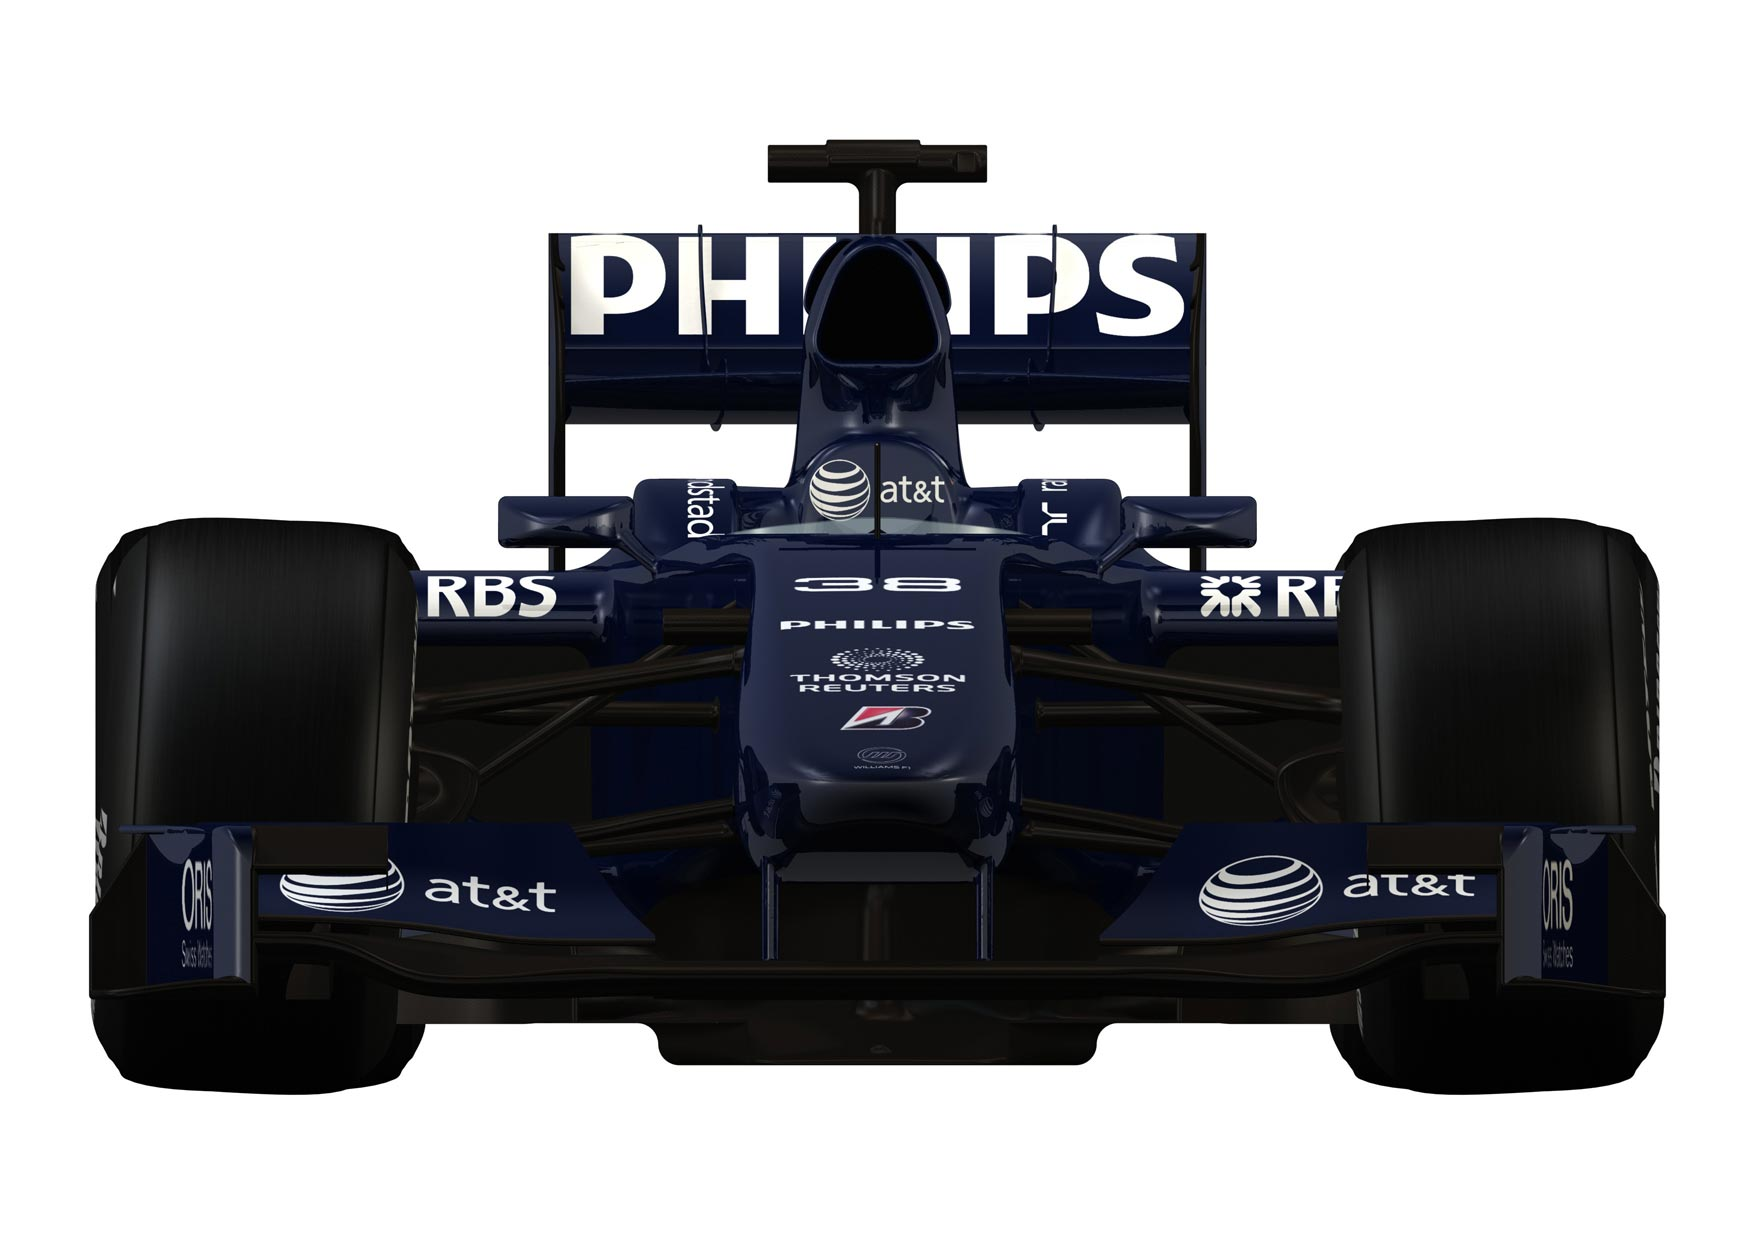 williamsfw31_2009f1car-27.jpg